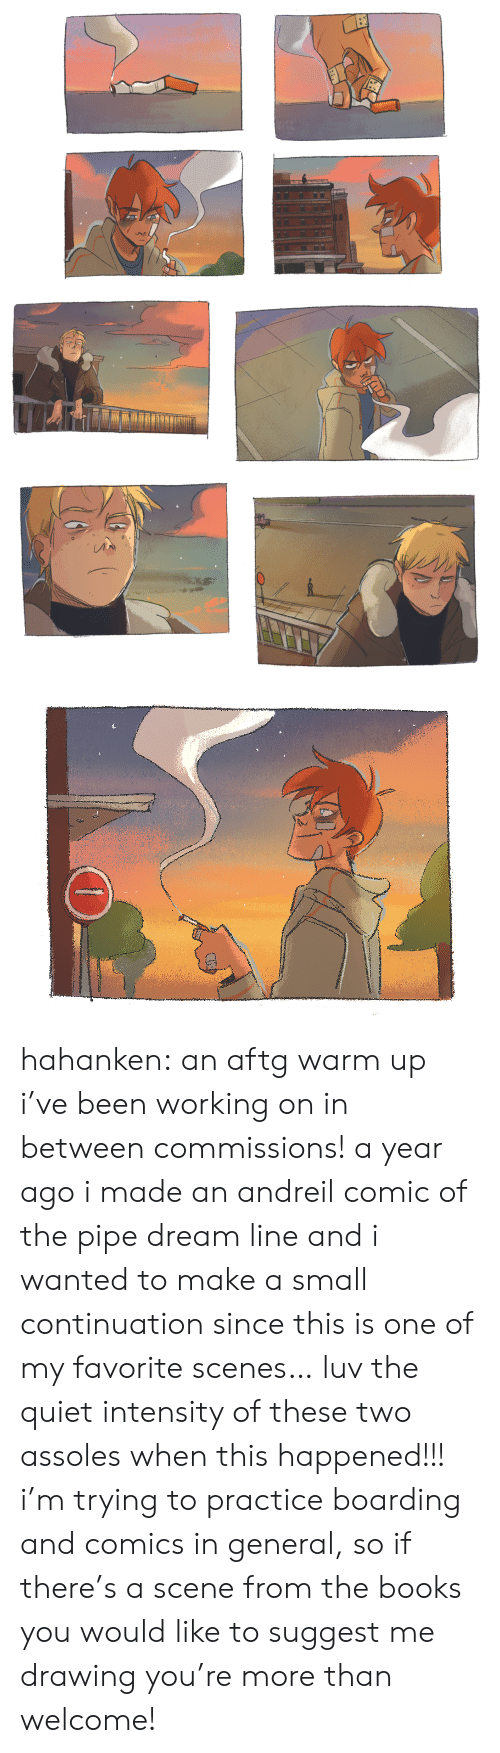 scenes: hahanken: an aftg warm up i've been working on in between commissions! a year ago i made an andreil comic of the pipe dream line and i wanted to make a small continuation since this is one of my favorite scenes… luv the quiet intensity of these two assoles when this happened!!! i'mtrying to practice boarding and comics in general, so if there's a scenefrom the books you would like to suggest me drawing you're more than welcome!